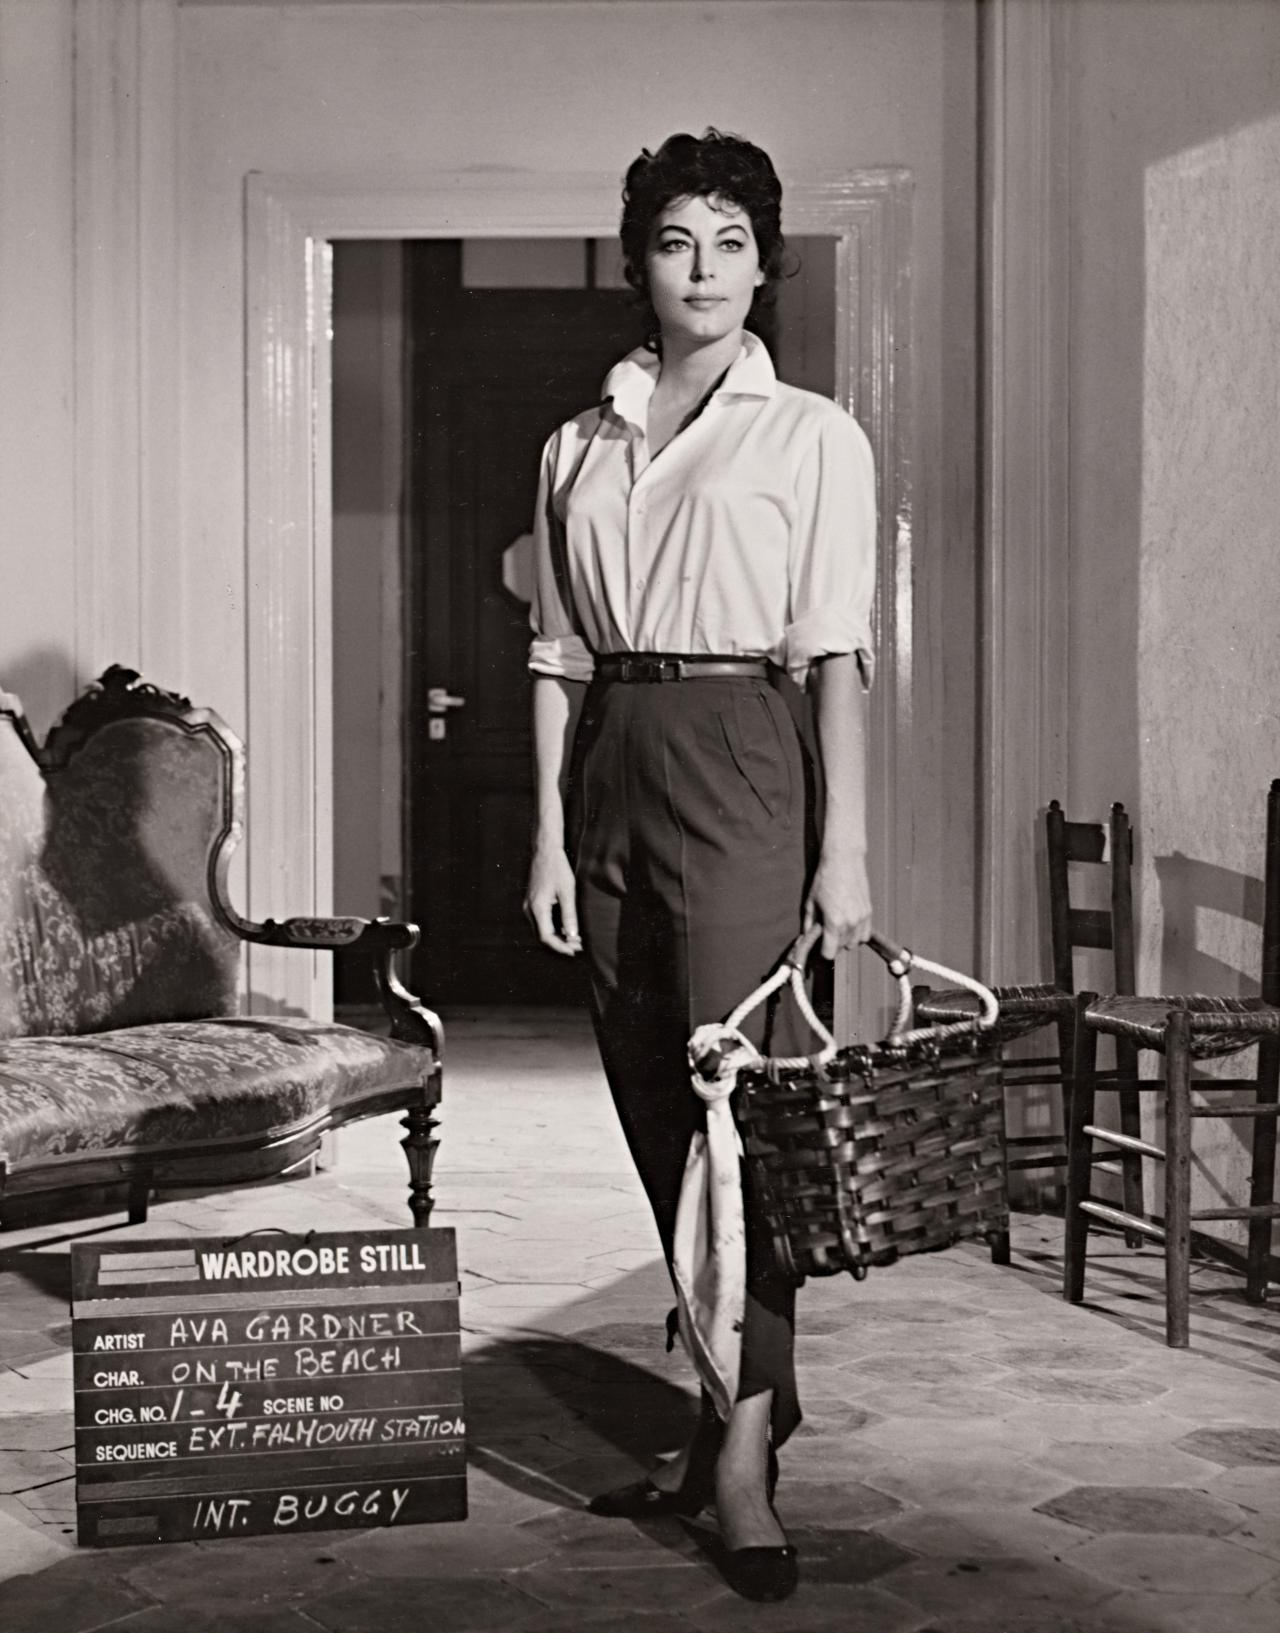 No title (Ava Gardner in wardrobe still for On the Beach: Falmouth Station and buggy)